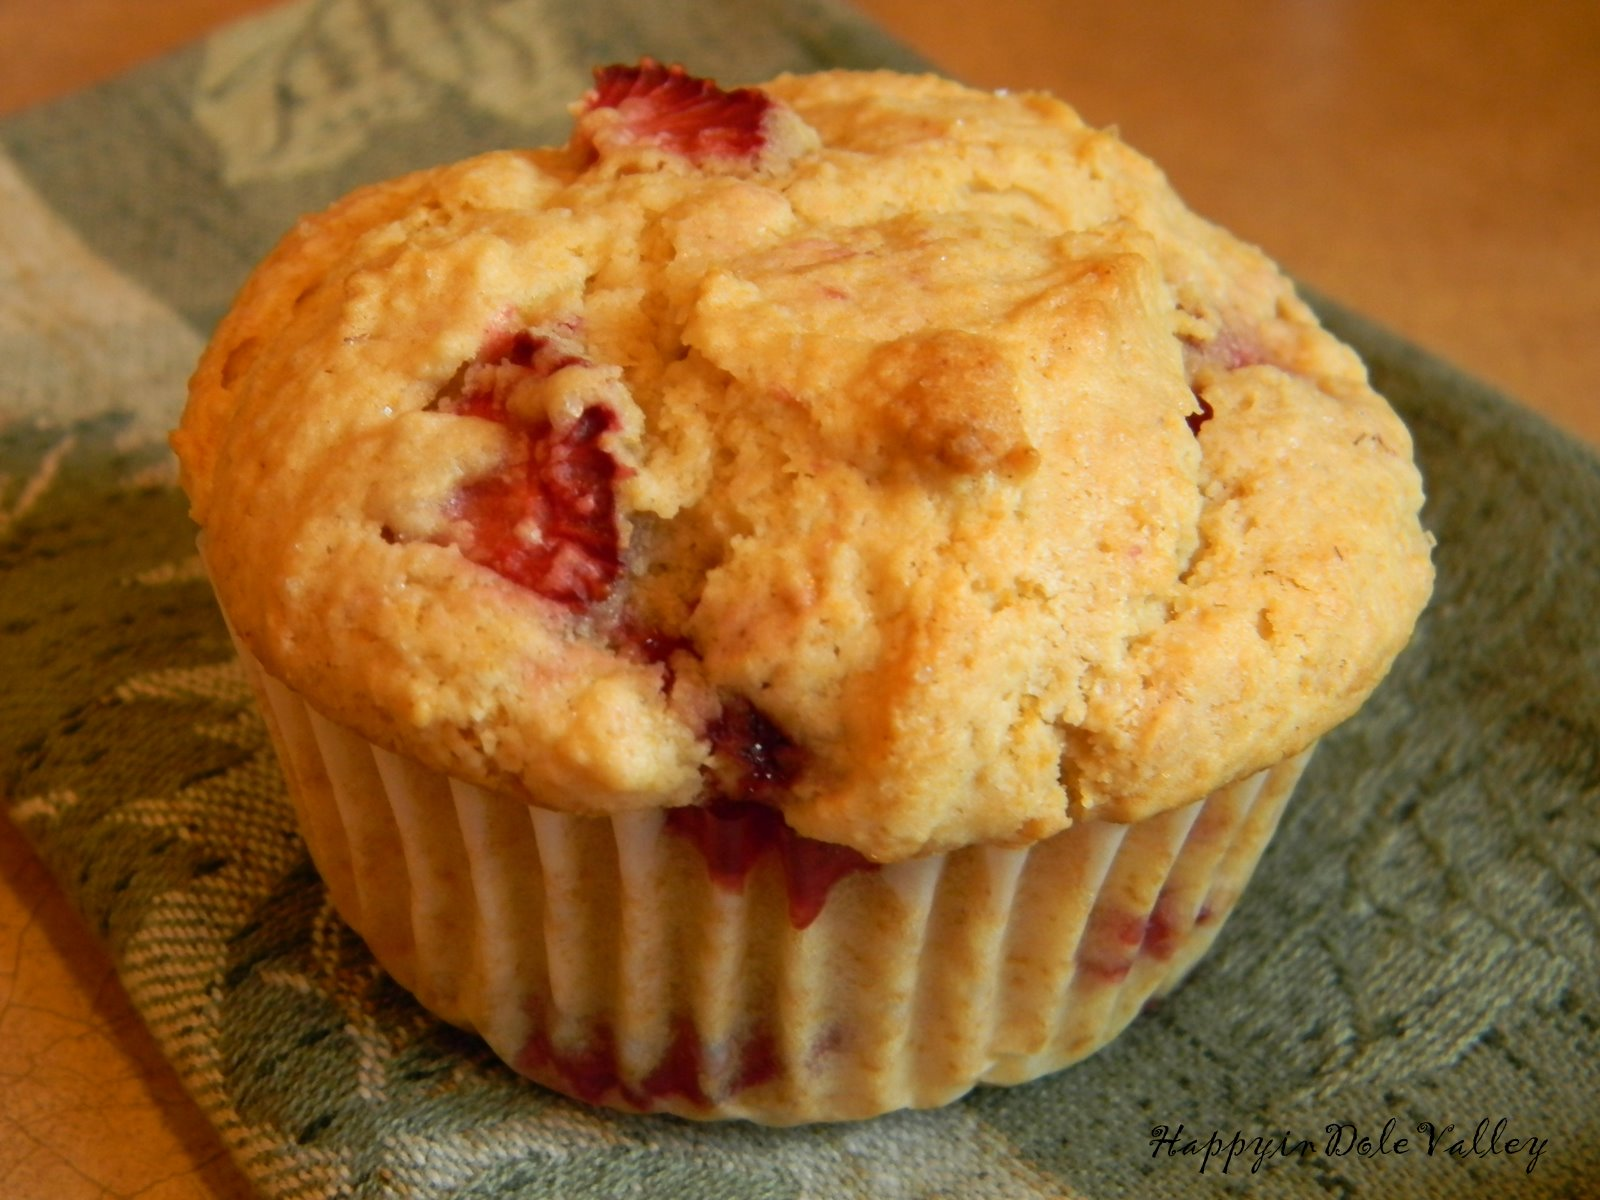 Happy in Dole Valley: Muffin Monday - Strawberry Shortcake Muffins